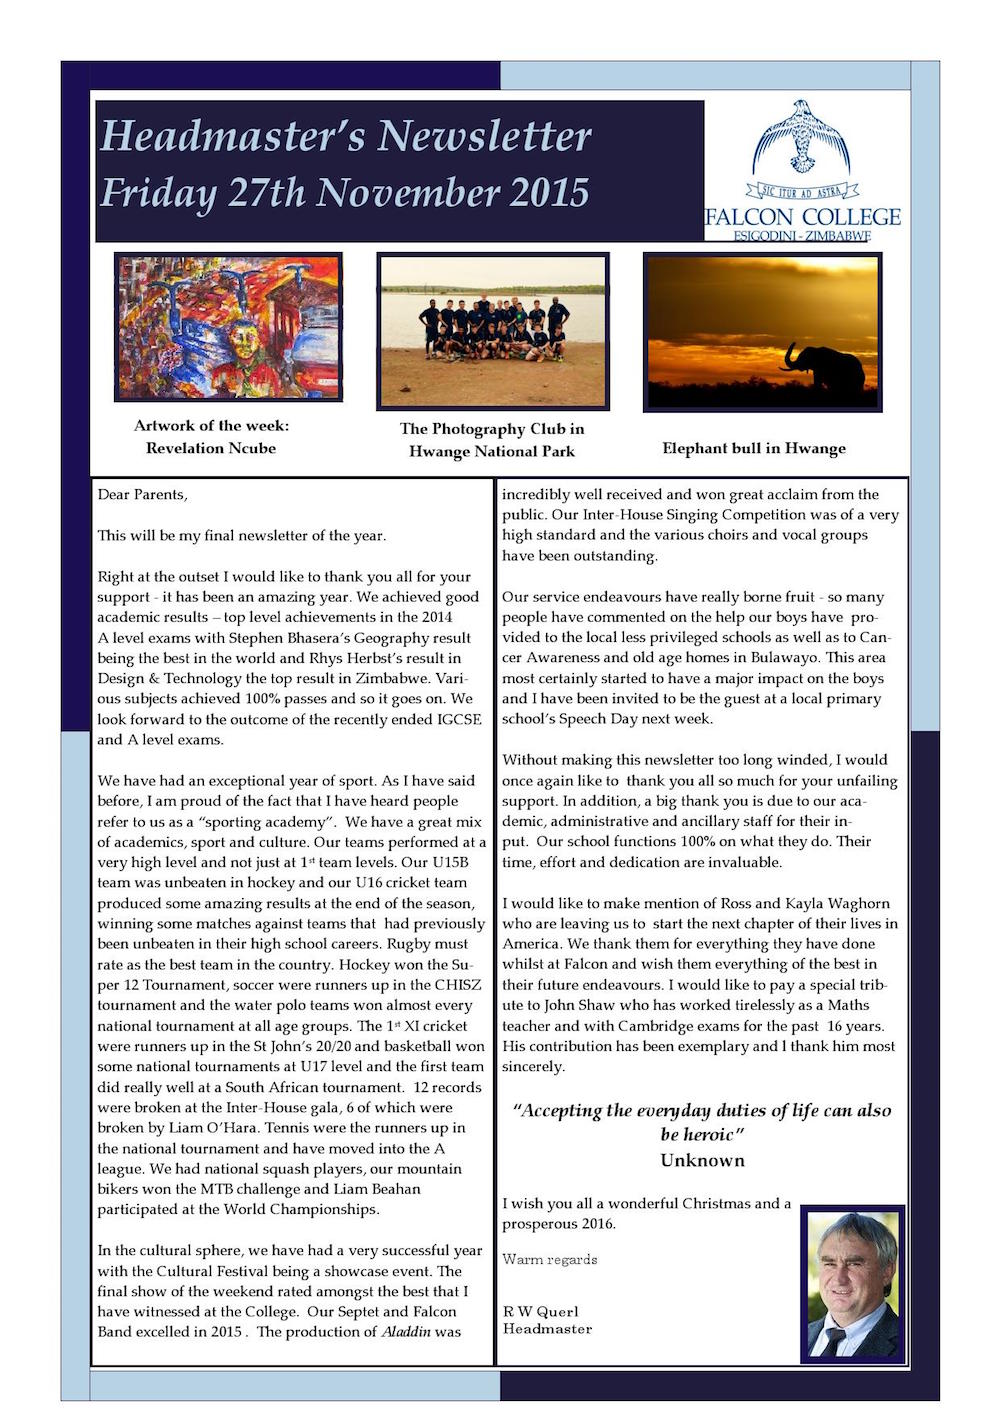 Headmaster's Newsletter Friday 27th November 2015 edited_000001